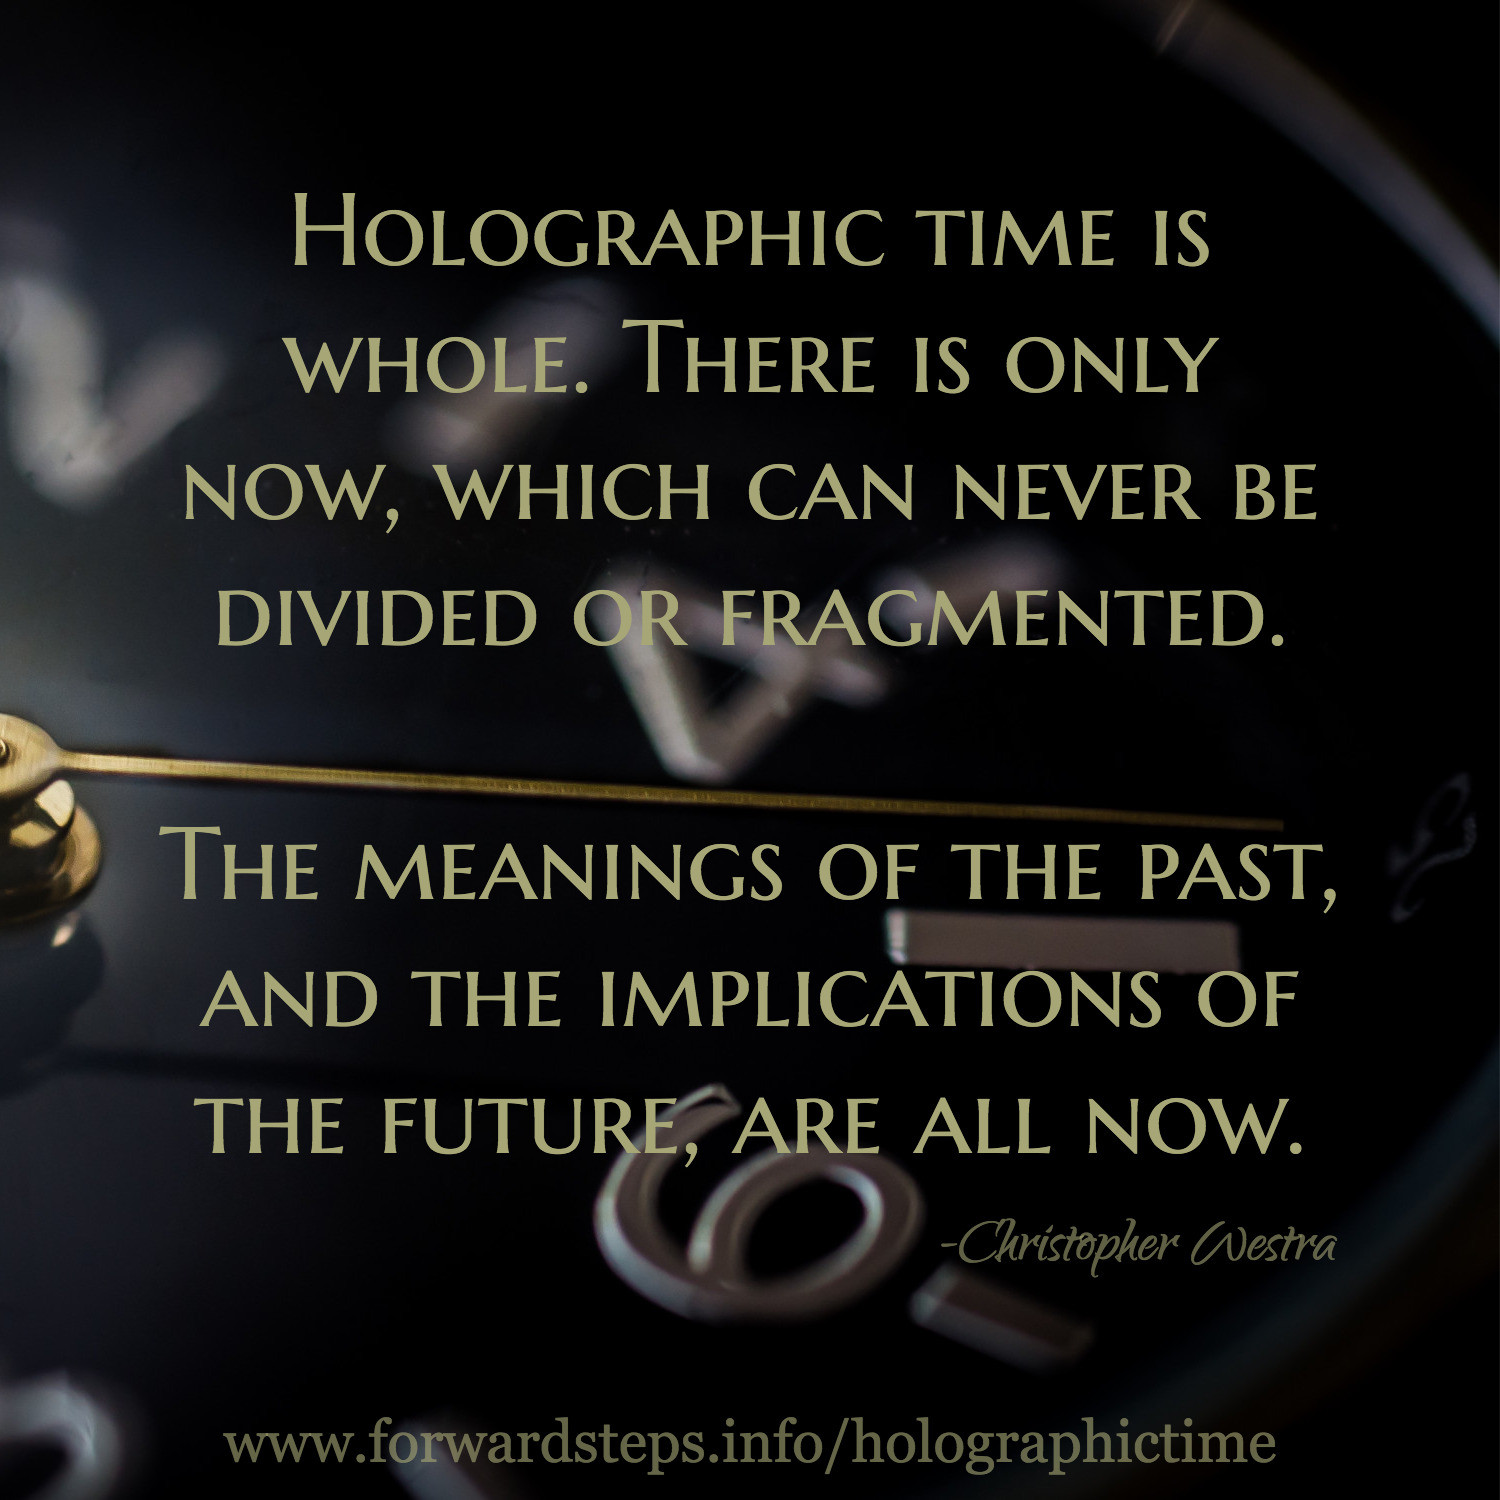 Holographic Time article image 1